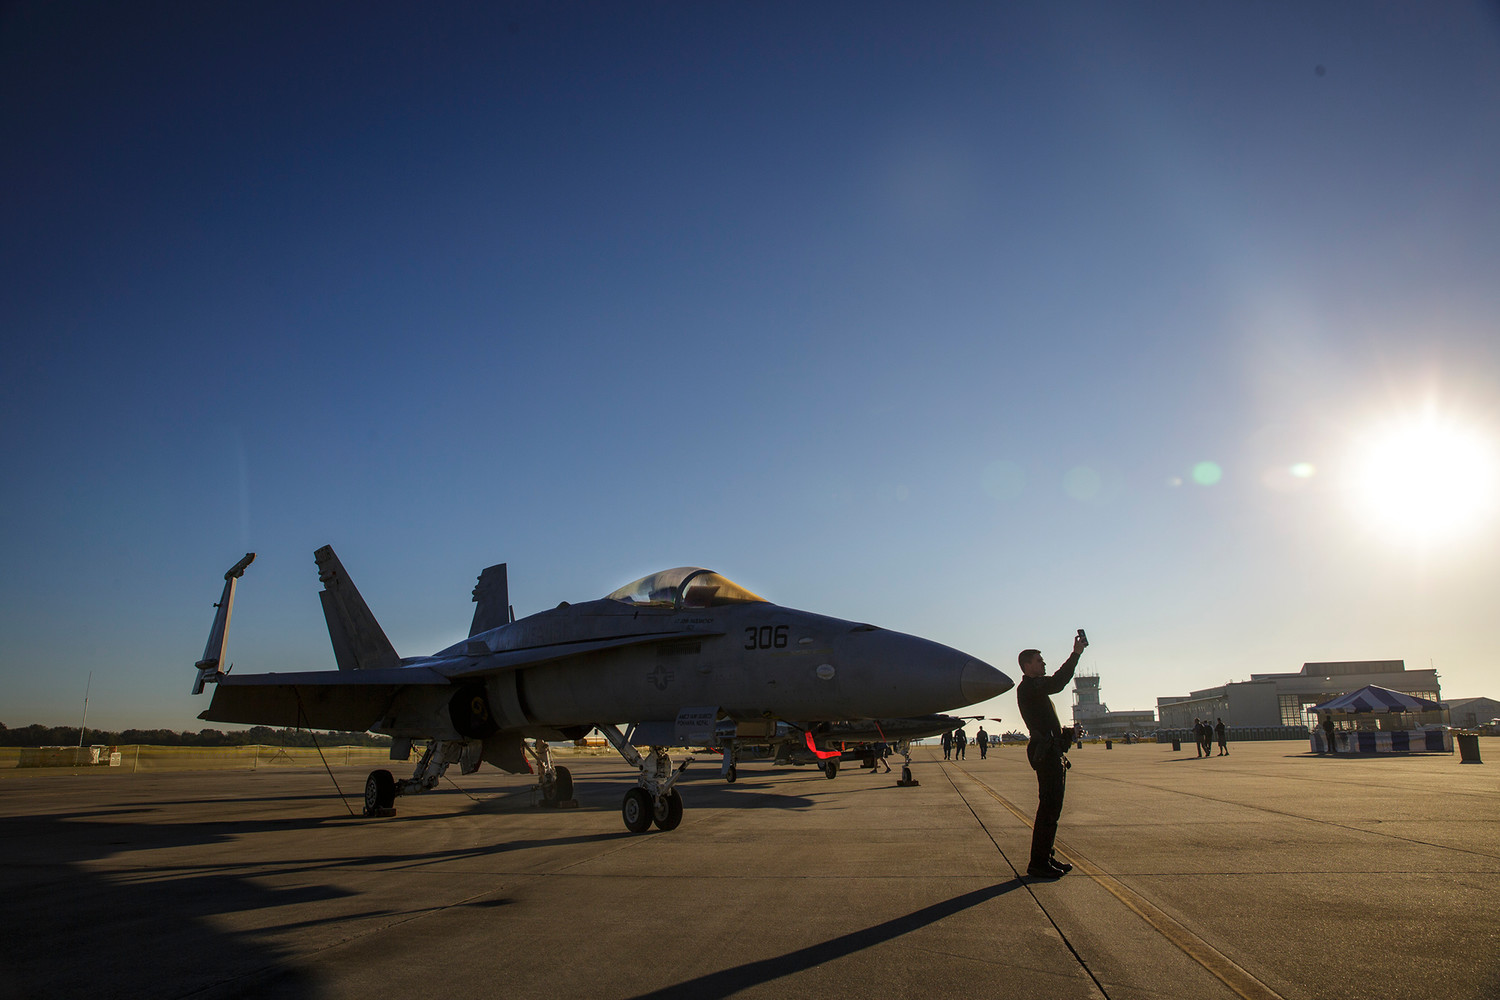 An FA-18 Super Hornet fighter jet sits on display at the Naval Air Station Jacksonville Air Show last week as an air show guest takes a selfie with the plane early Friday morning.